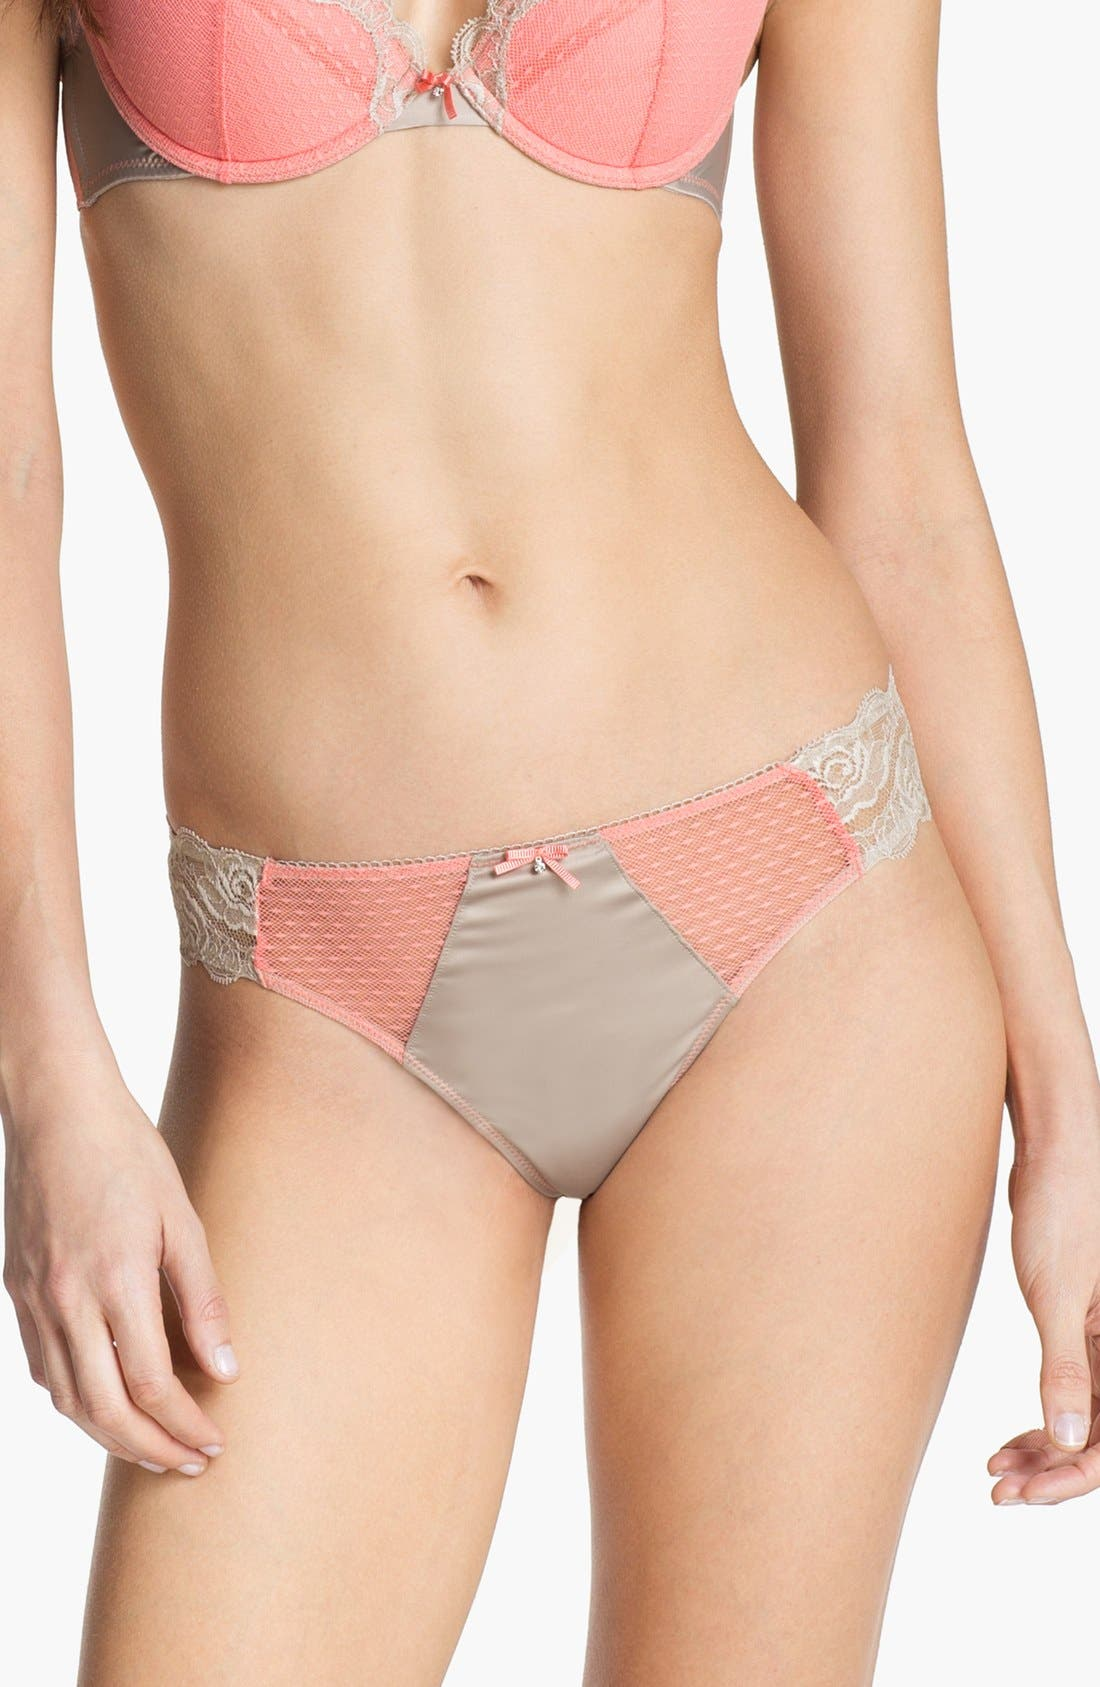 Main Image - Miss Studio by La Perla 'Romantic Bay' Thong